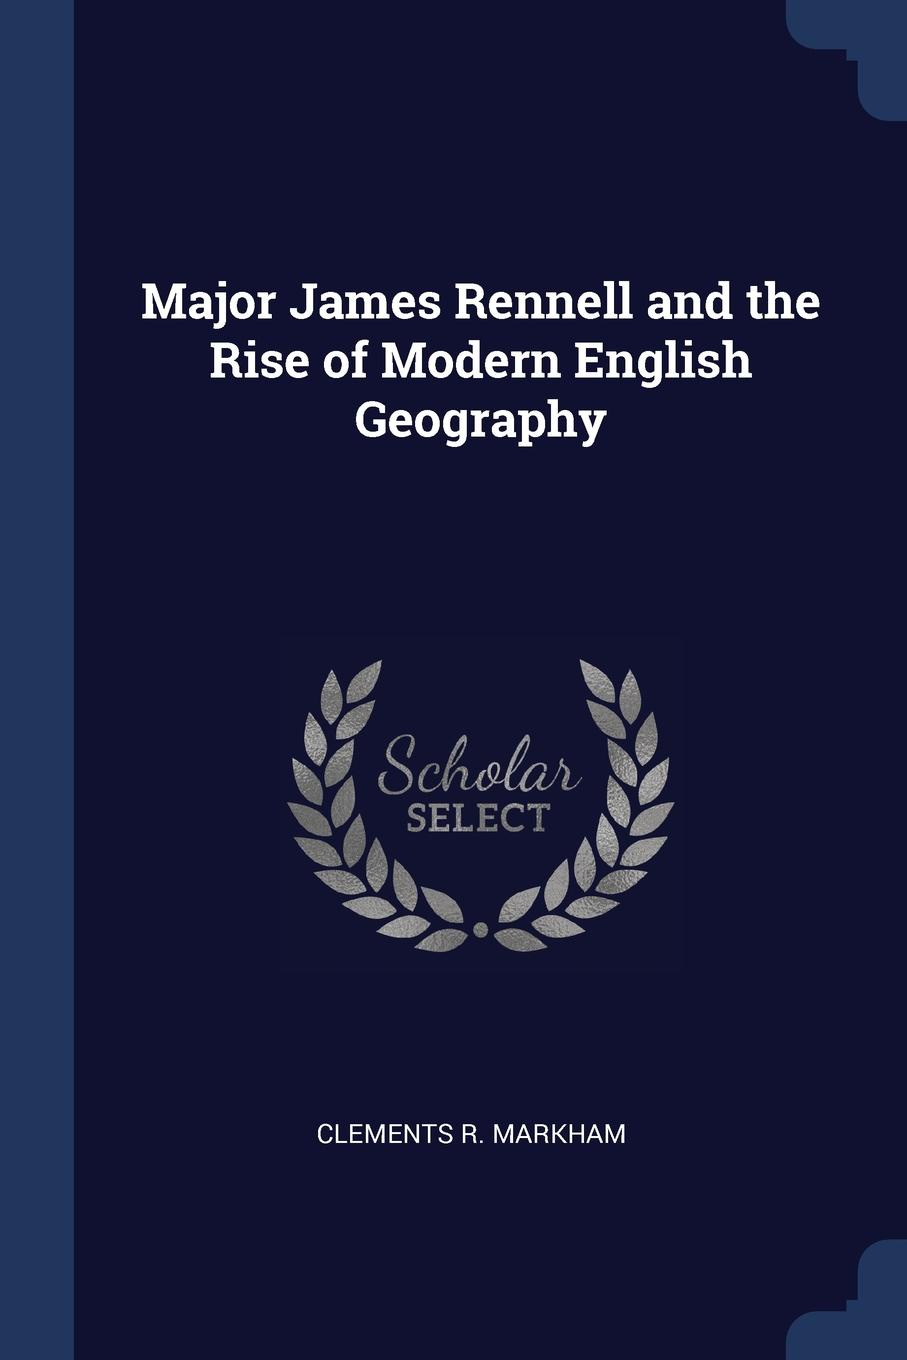 Major James Rennell and the Rise of Modern English Geography. Clements R. Markham